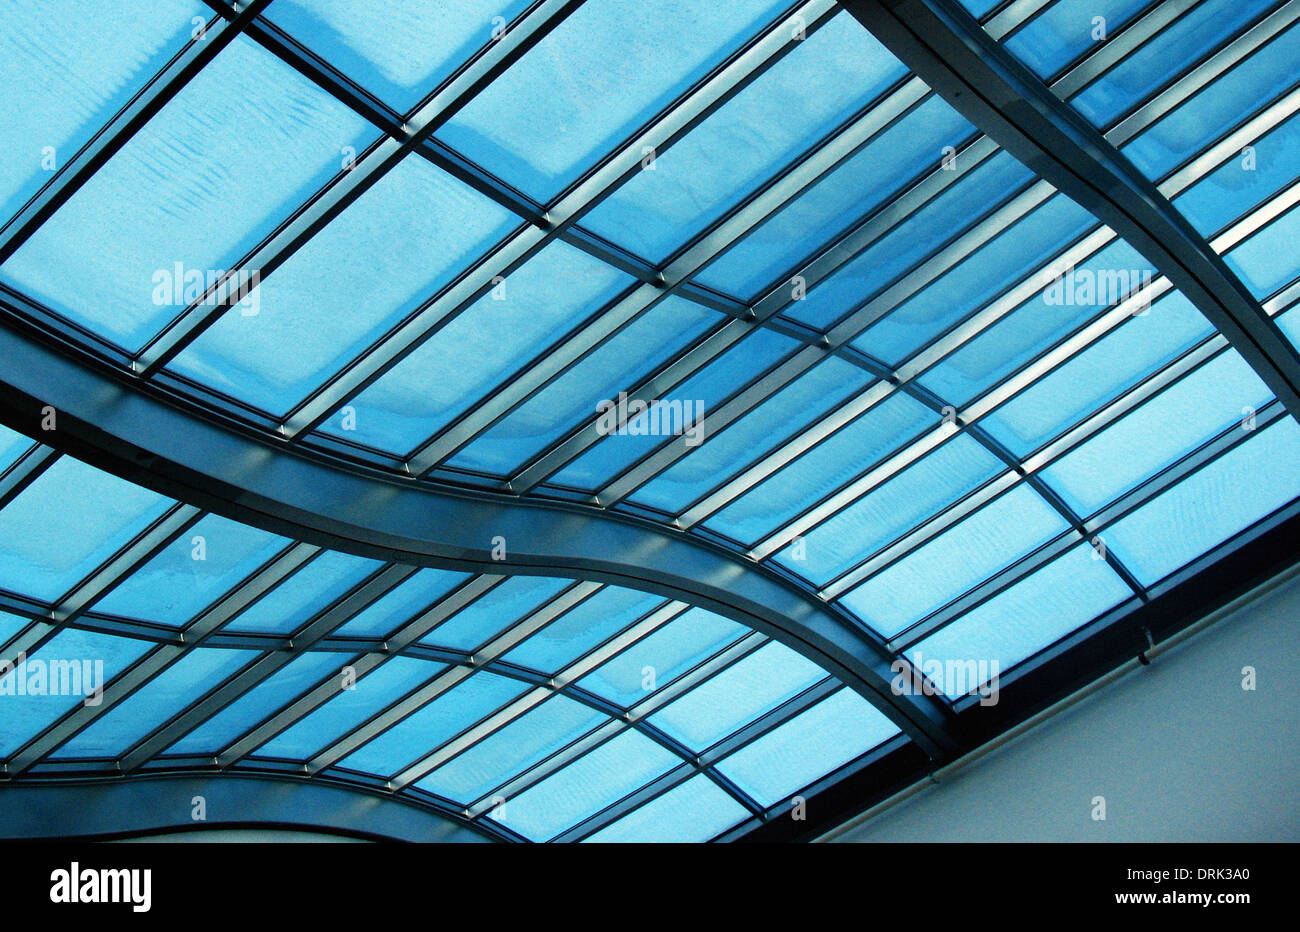 abstract architectural detail - Stock Image